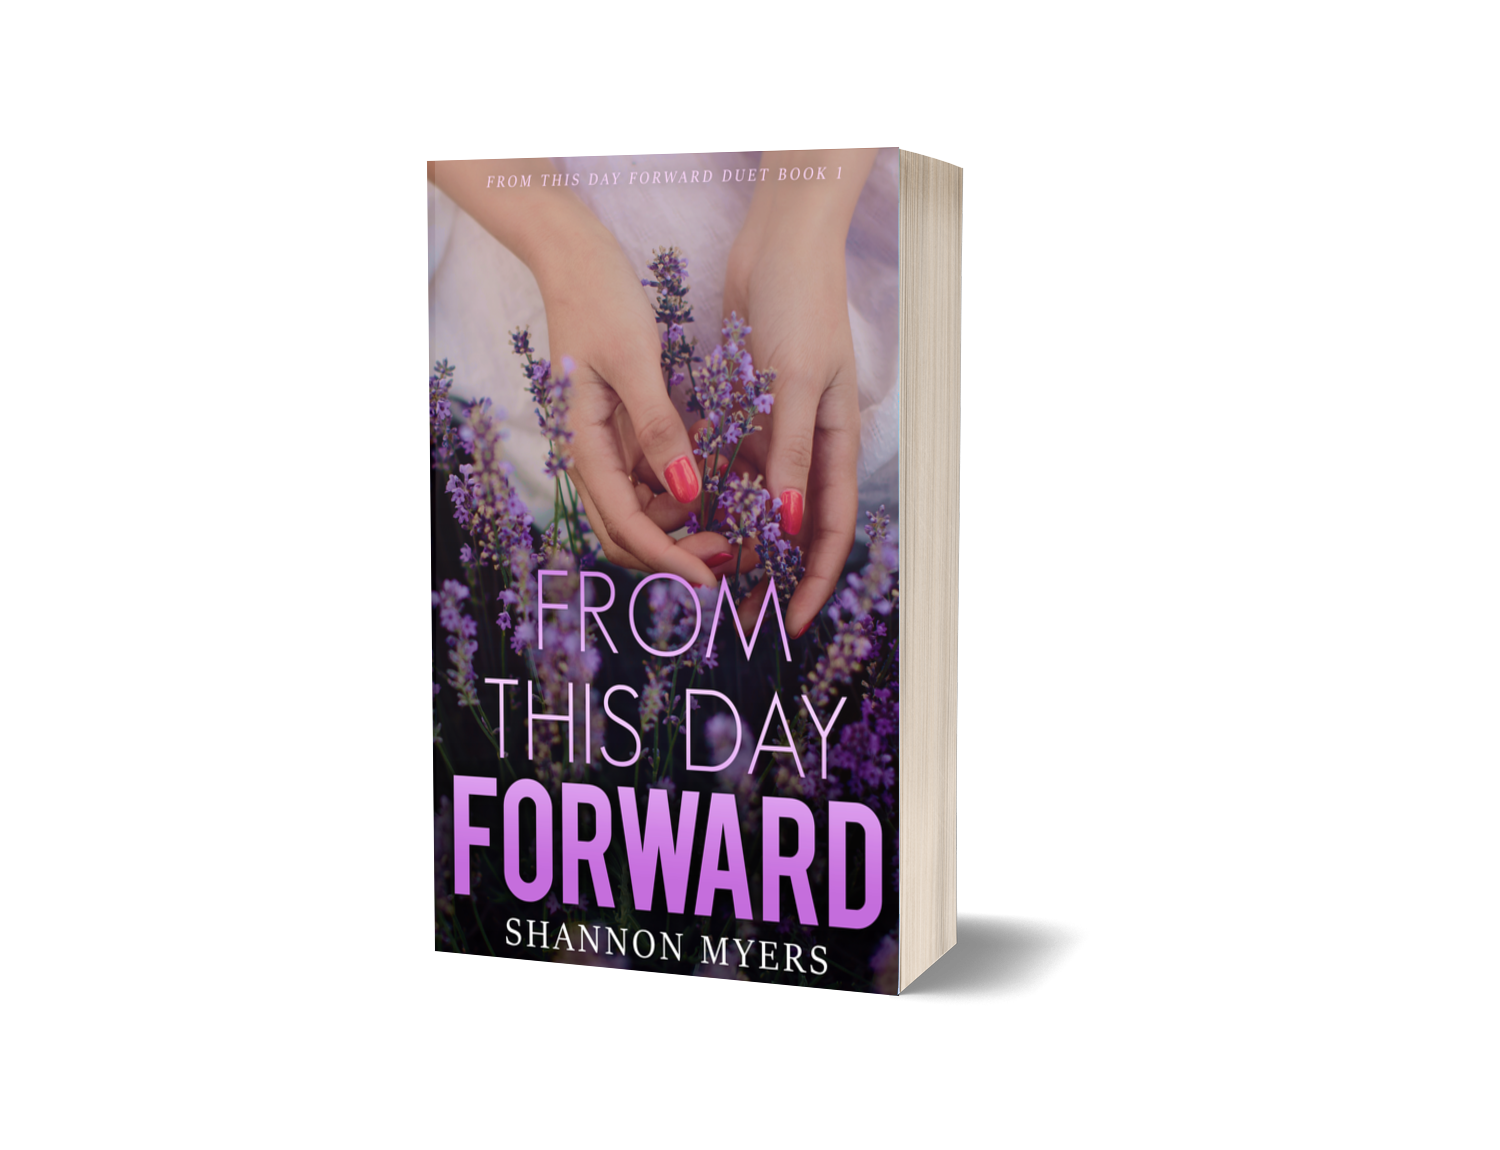 From This Day Forward (FTDF Duet Book 1)